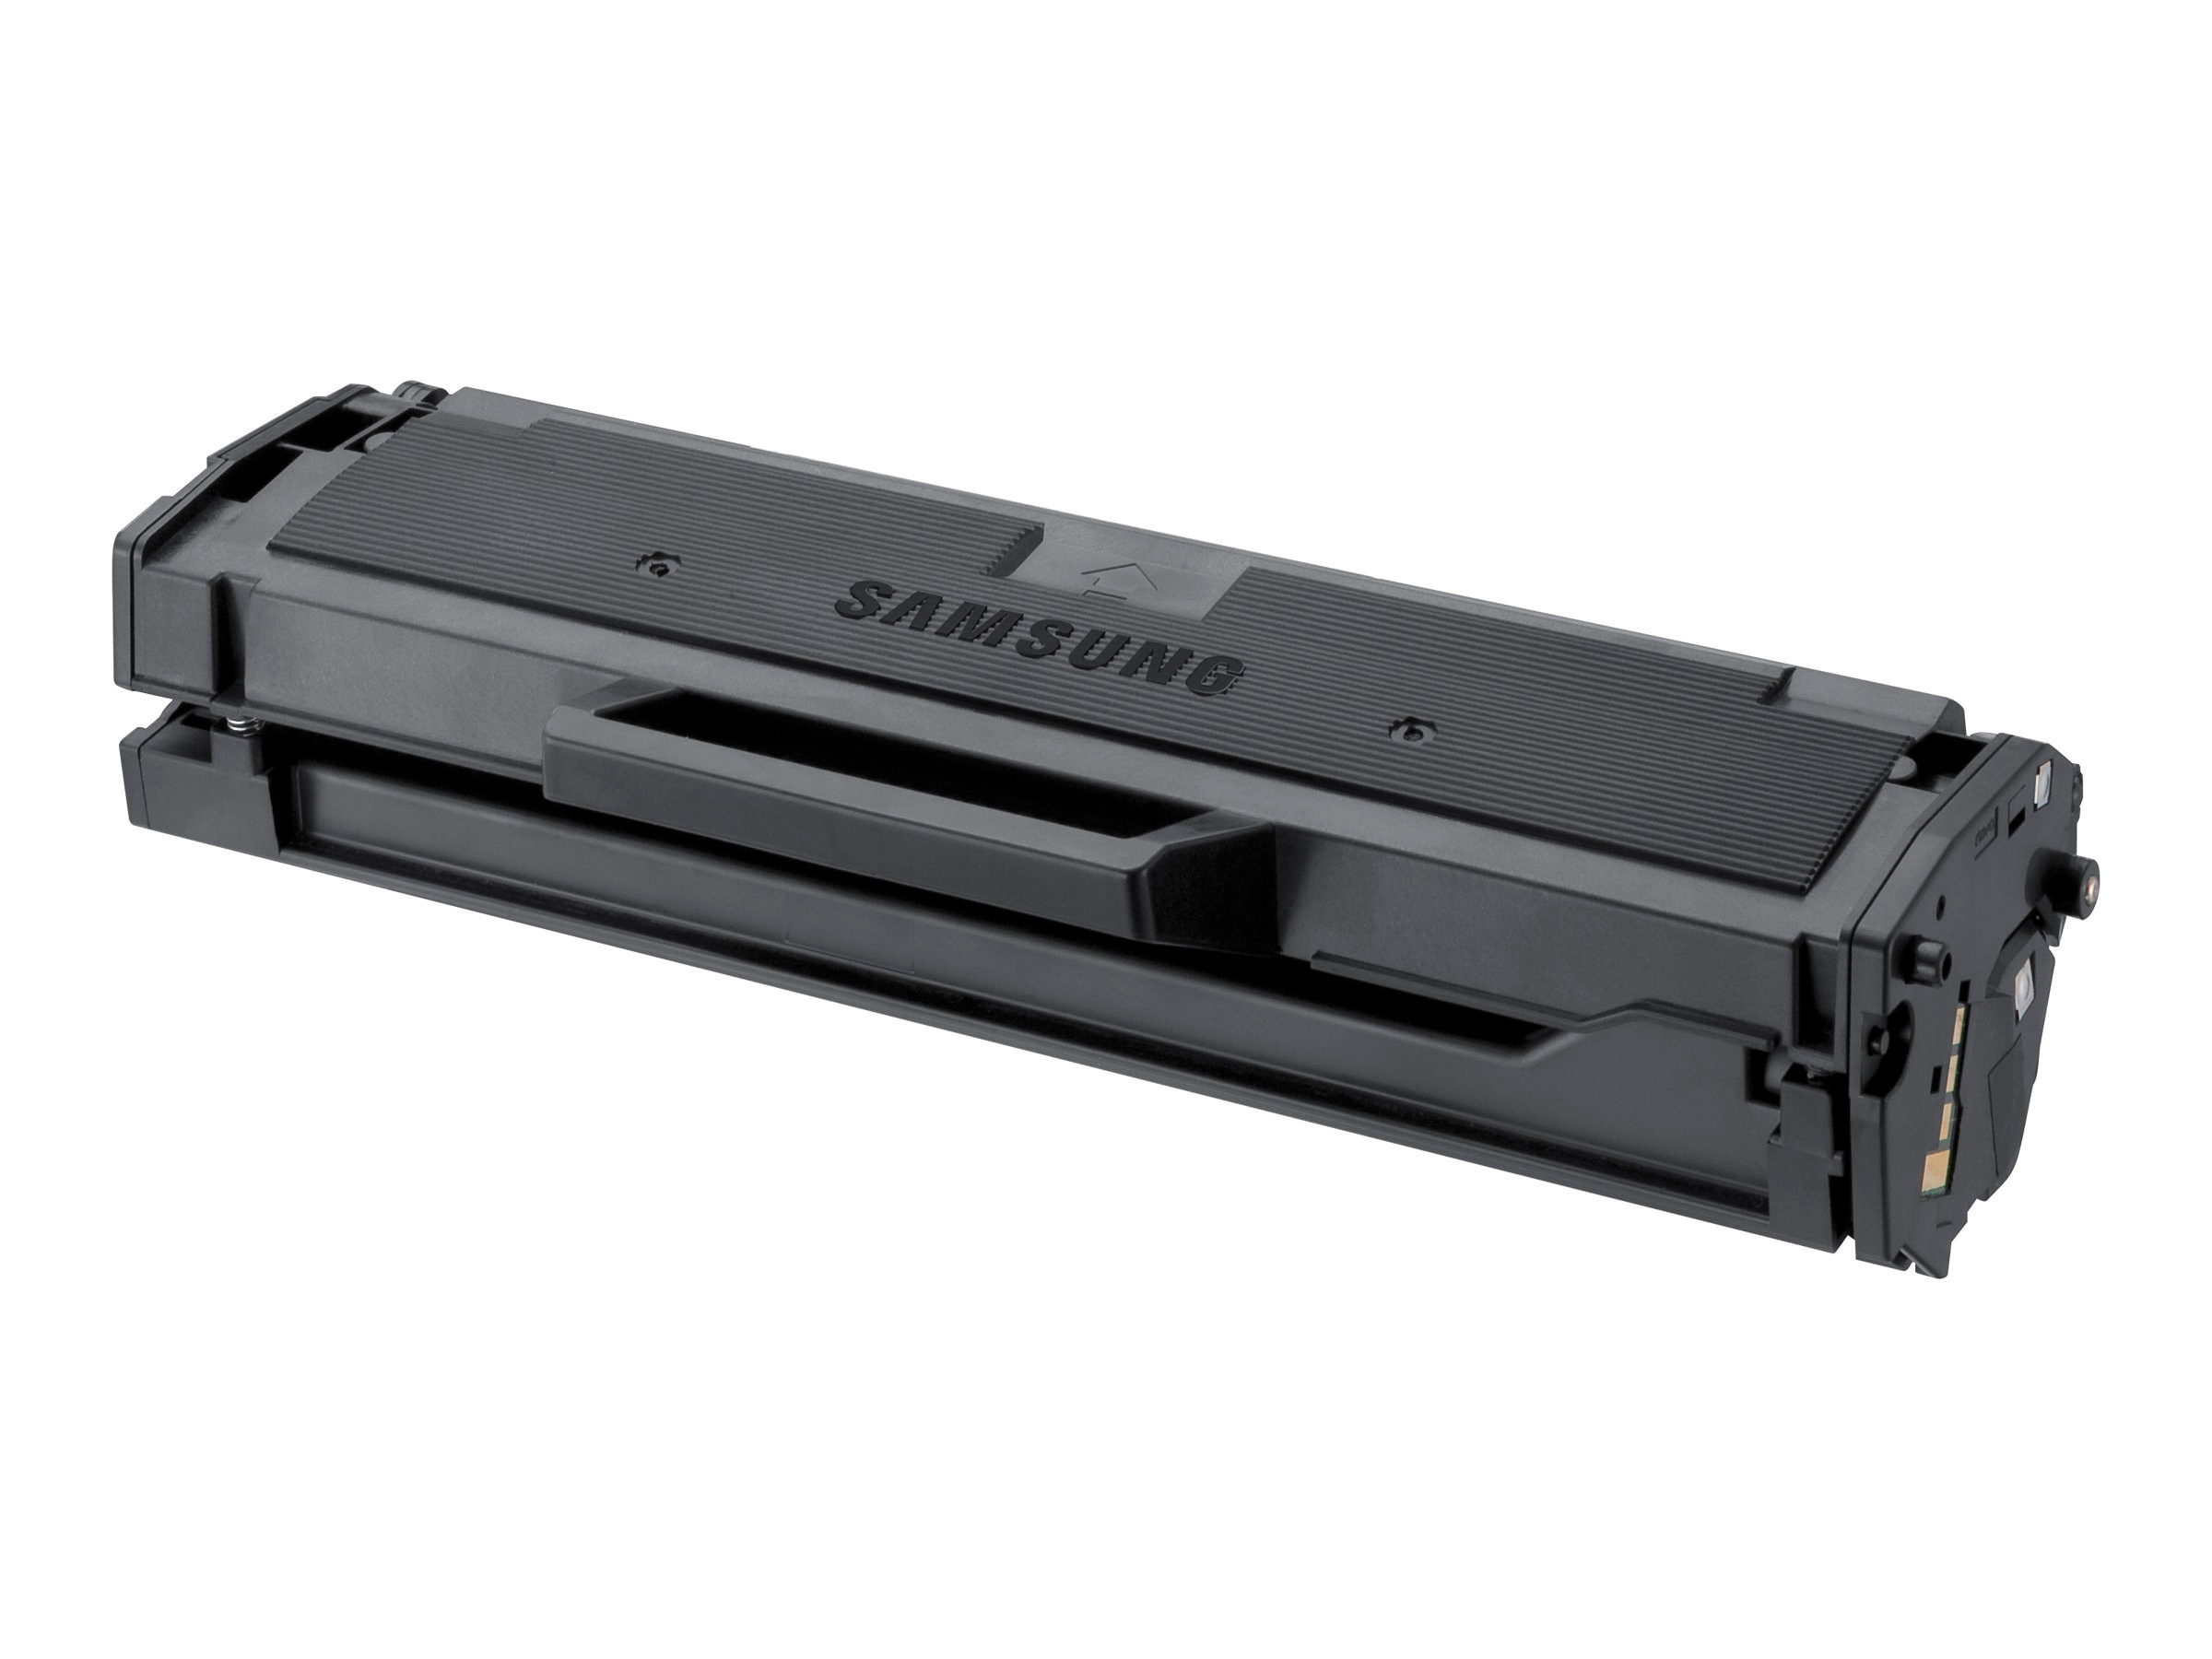 Samsung Black Toner Cartridge for ML-2165W, SCX-3405FW & SF-760P